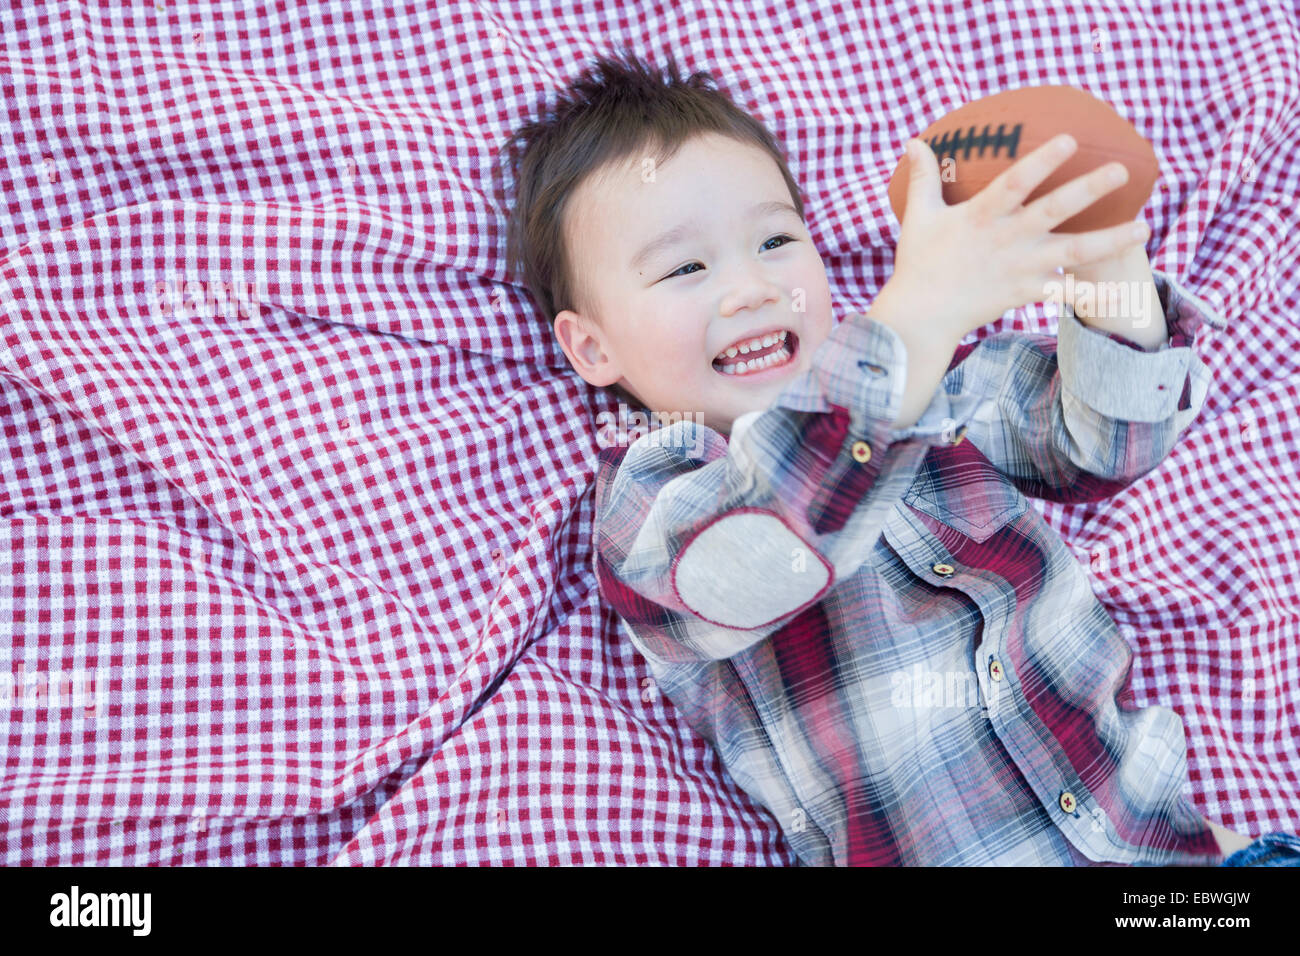 Cute Young Mixed Race Boy Playing With Football Outside On Picnic Blanket. - Stock Image